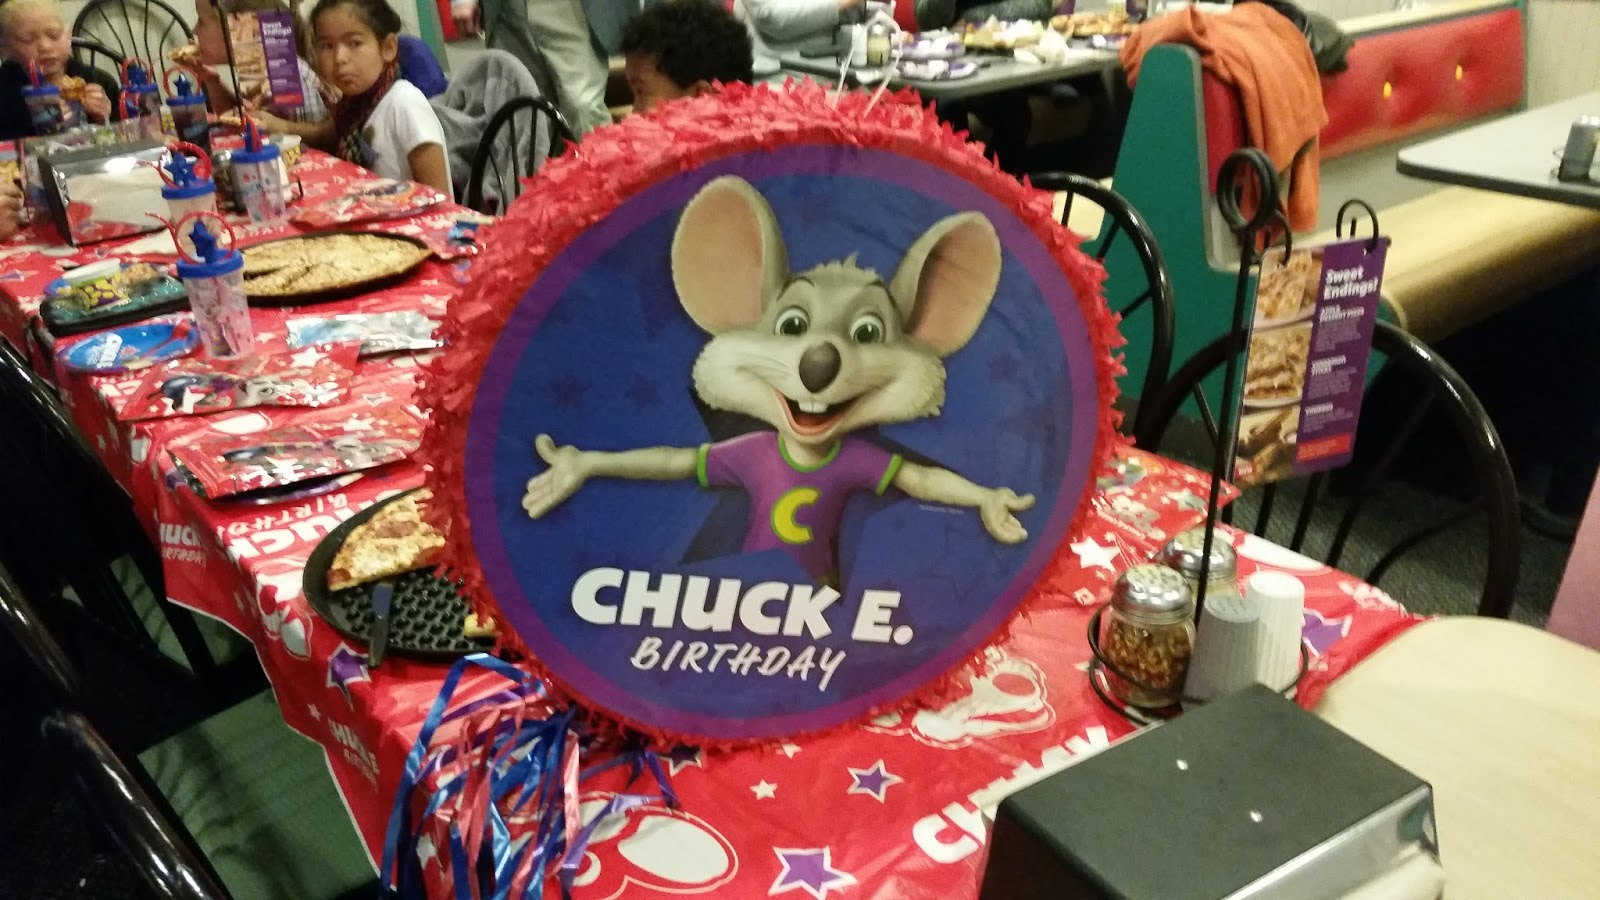 Chuck E Cheese: Celebrating At Chuck E. Cheese's